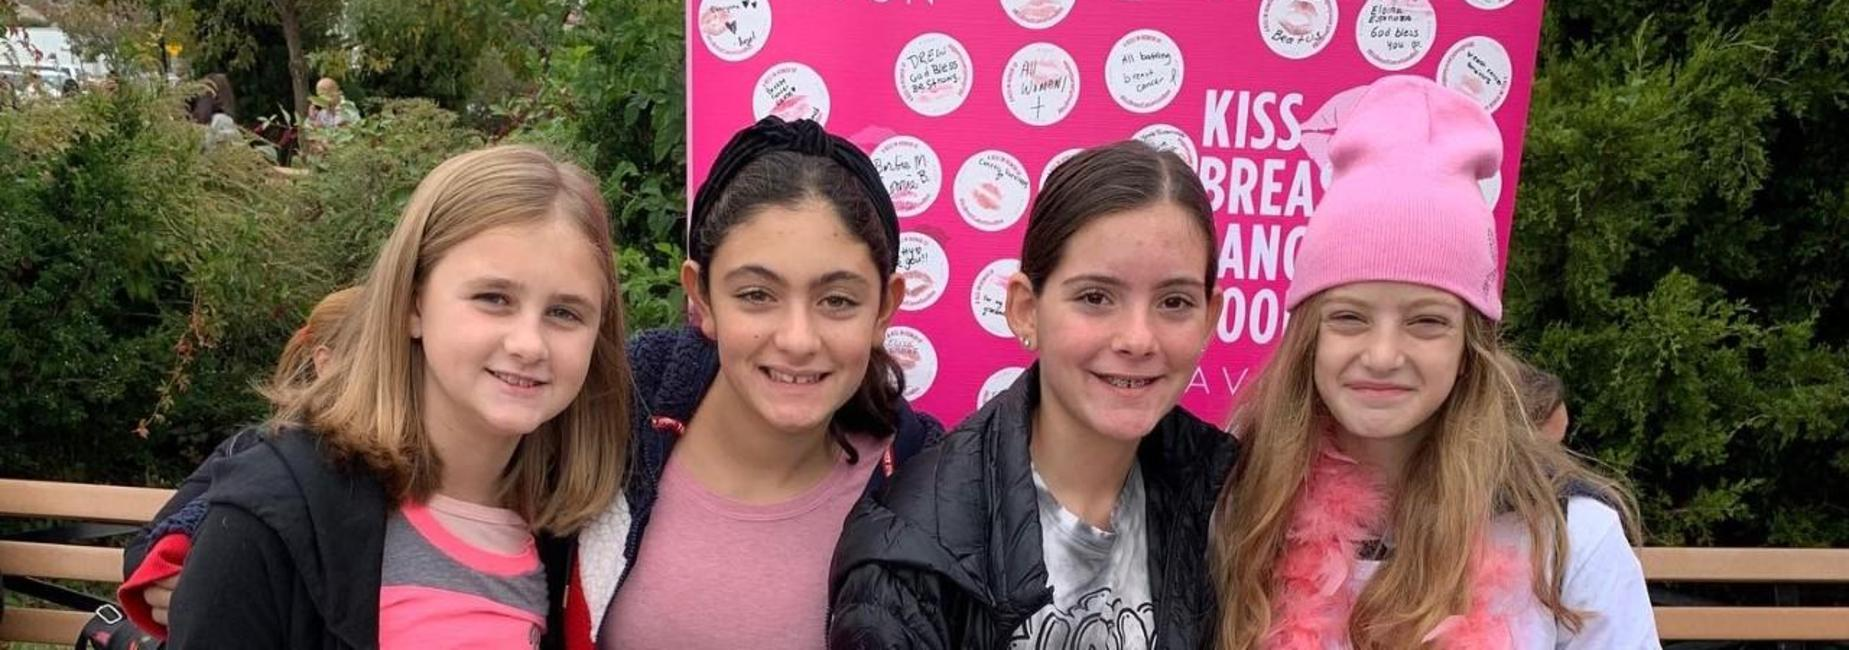 4 Girls at Breast Cancer Walk